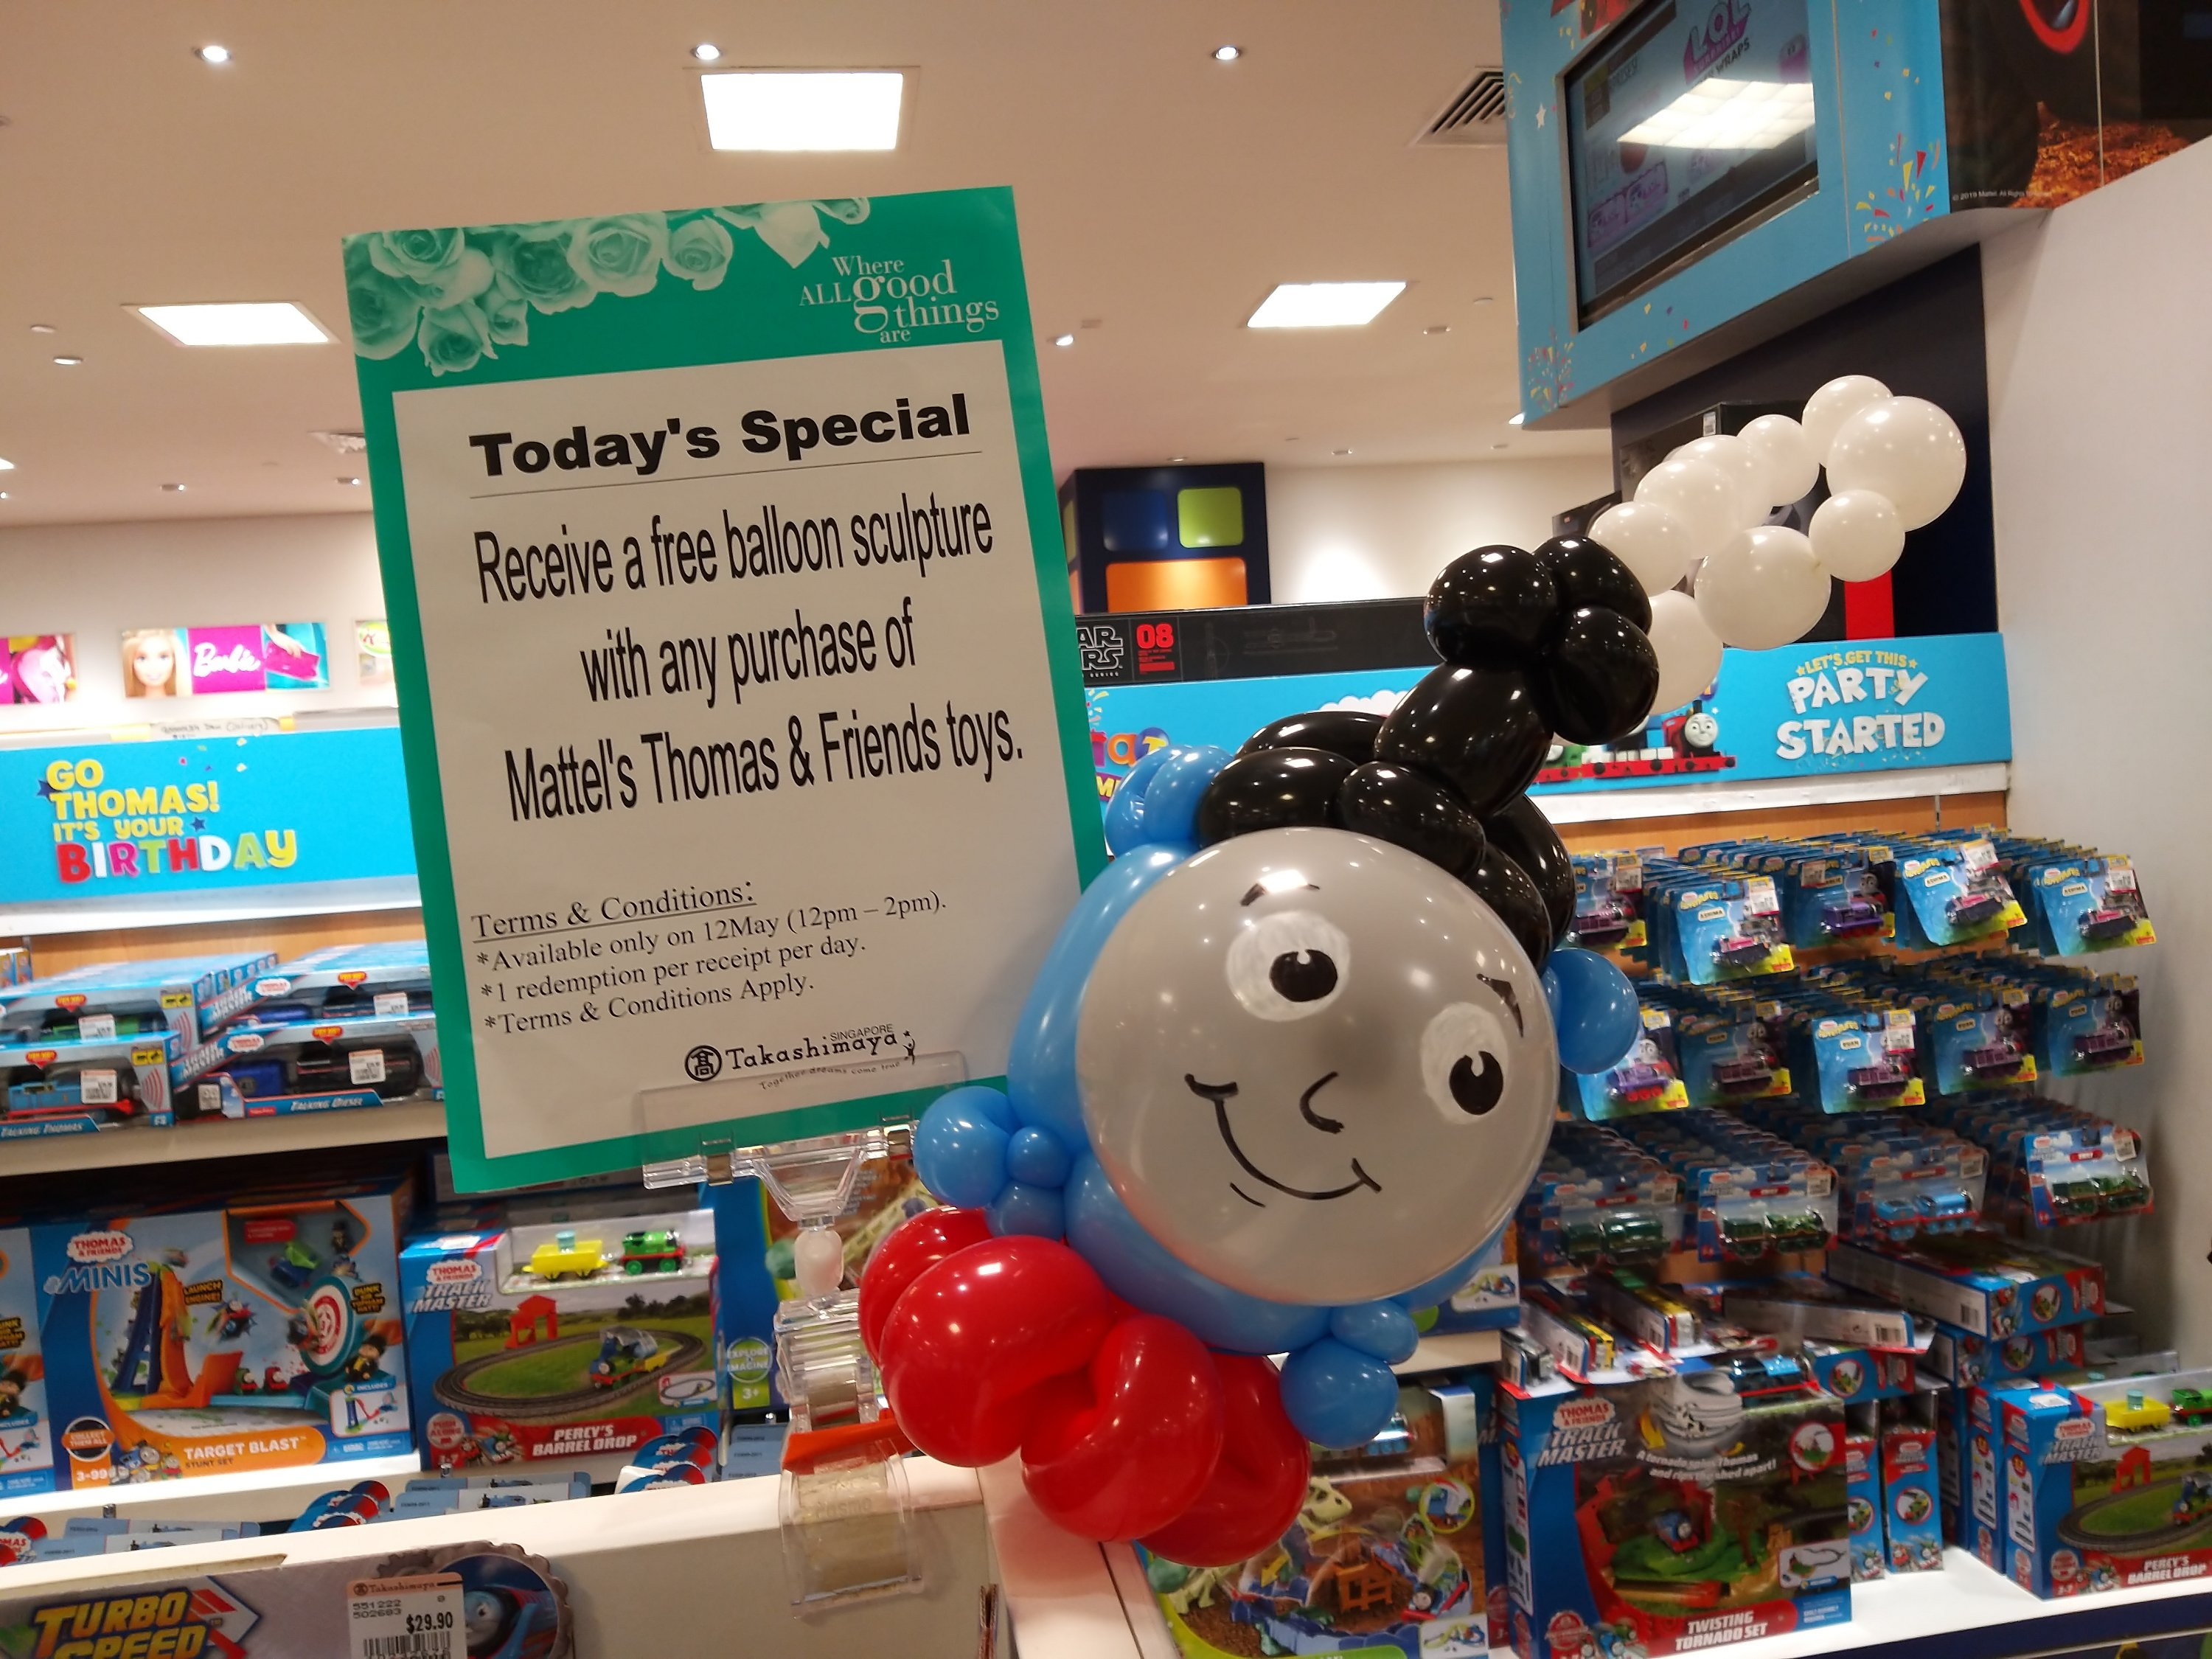 , Happy birthday Thomas the Train's and friend!, Singapore Balloon Decoration Services - Balloon Workshop and Balloon Sculpting